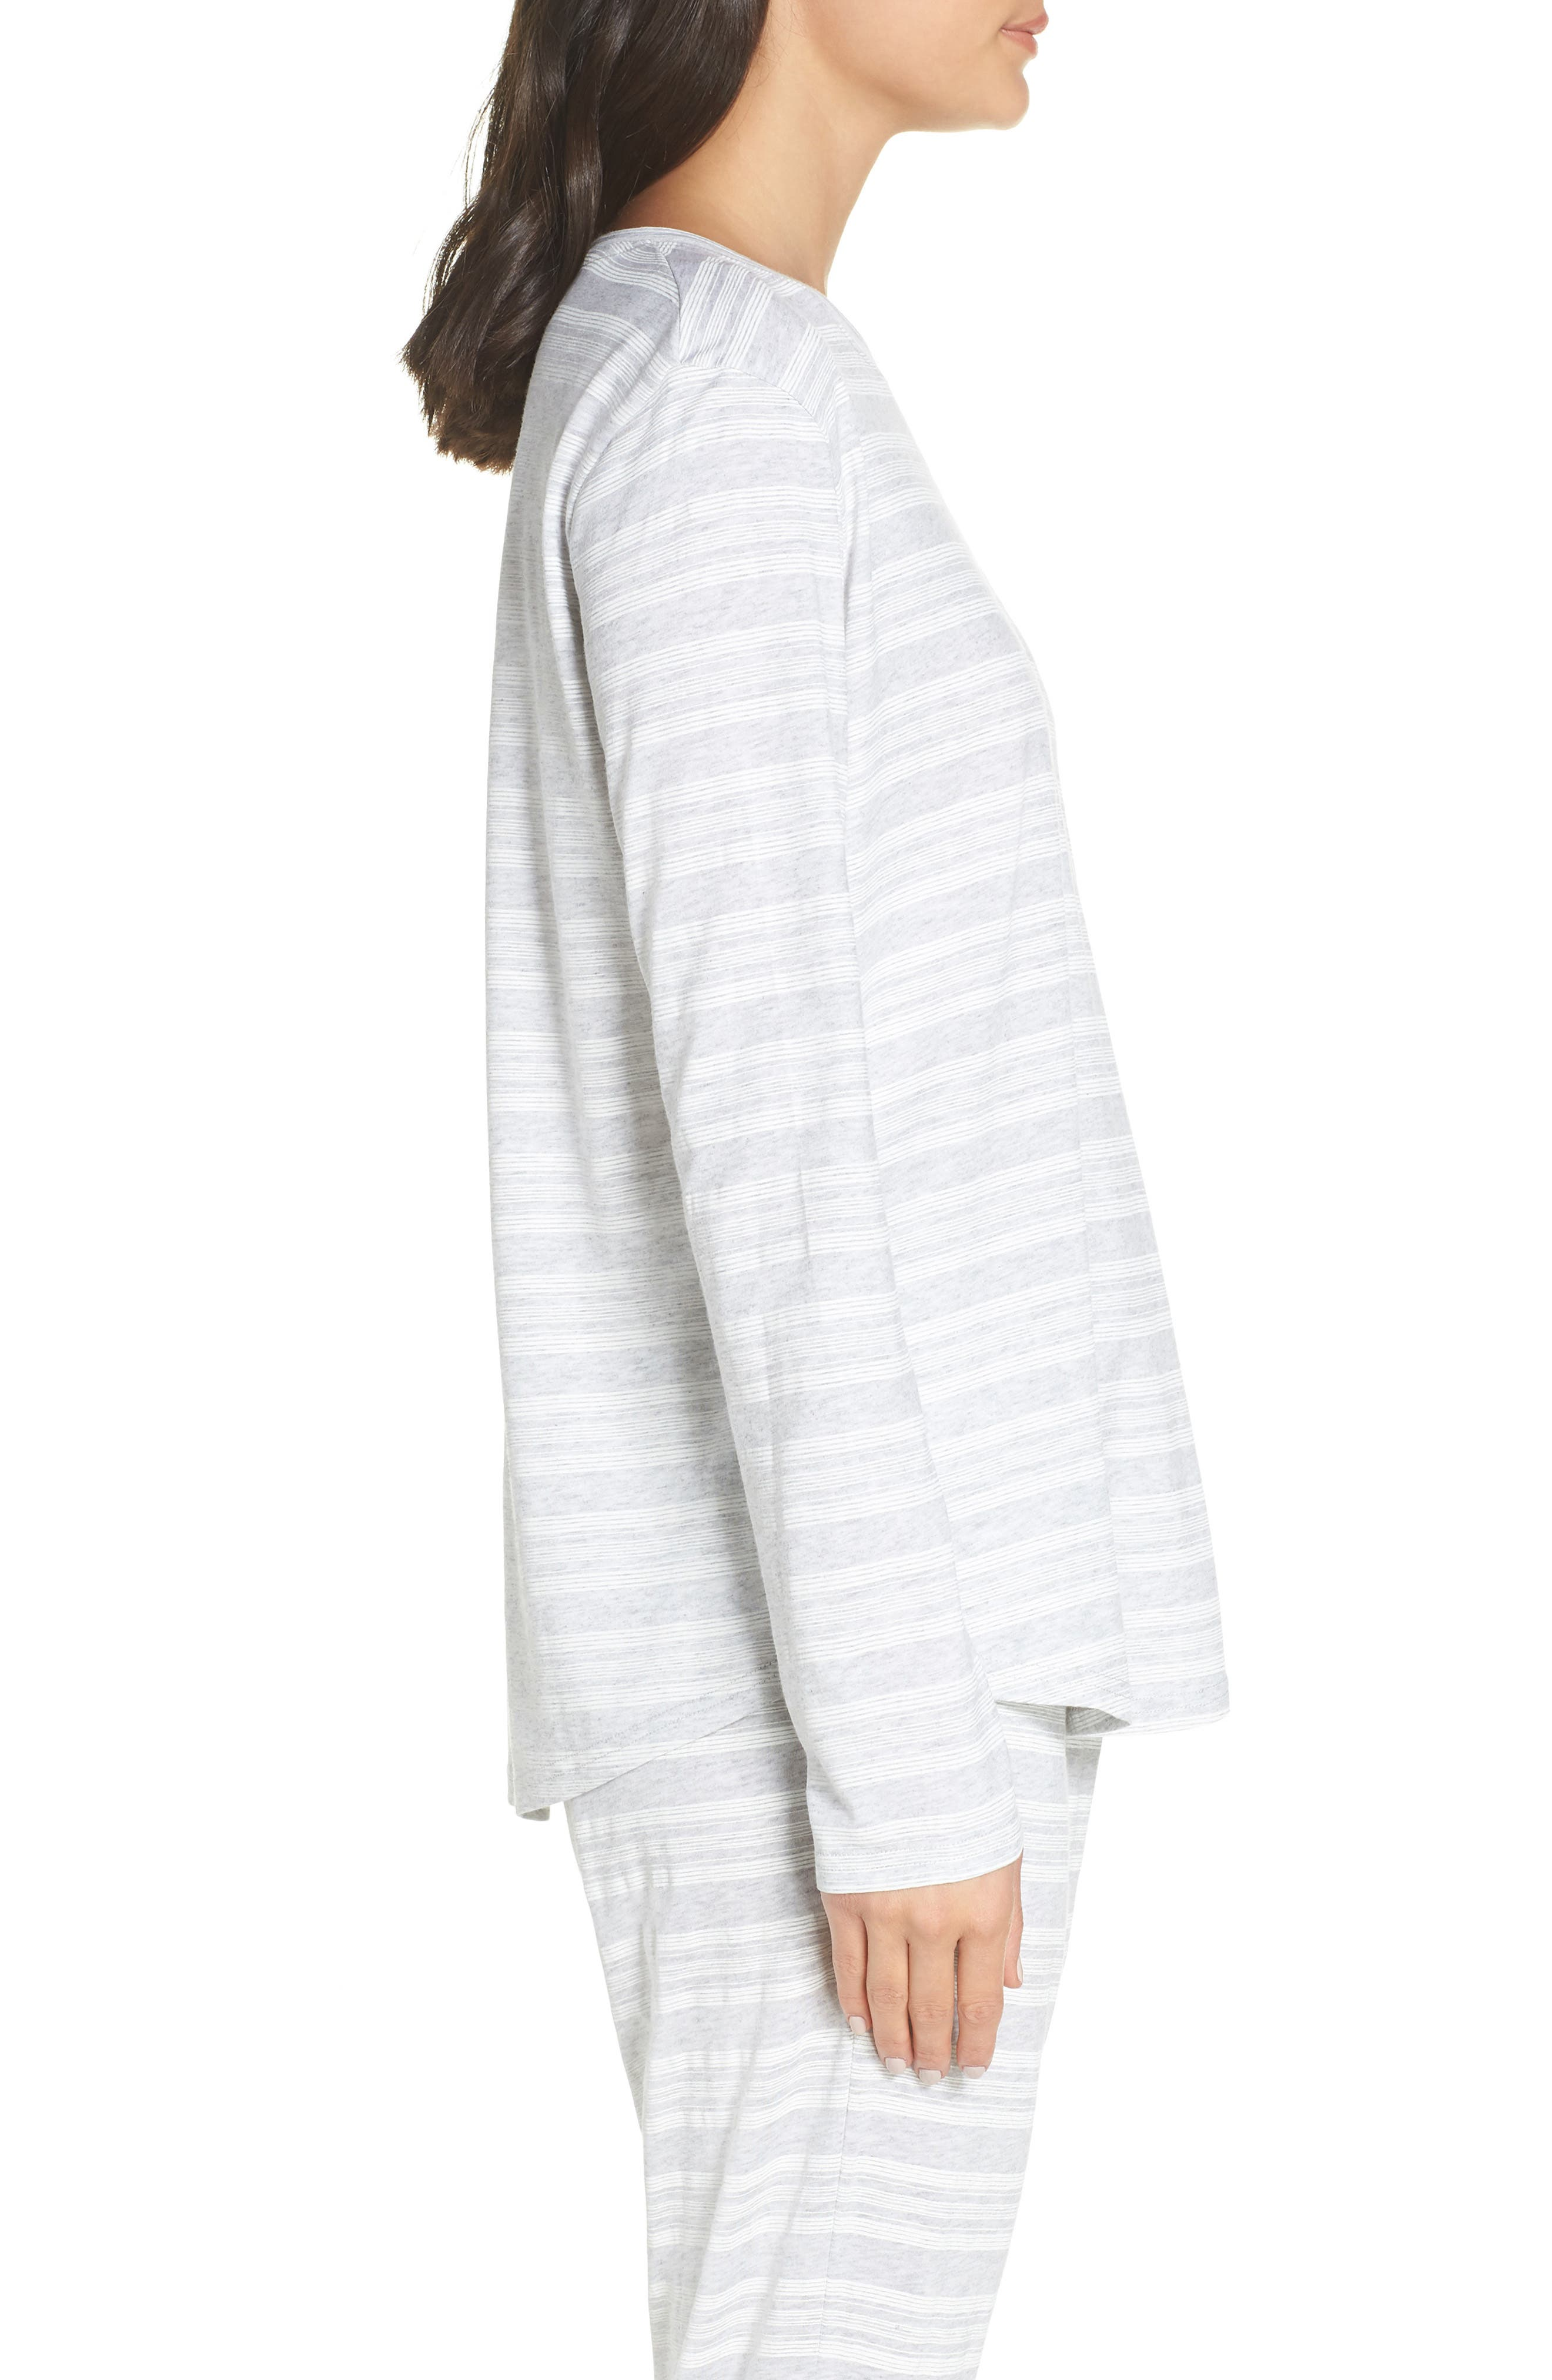 CHALMERS,                             Issy Pajama Top,                             Alternate thumbnail 3, color,                             LOLLY STRIPE WHITE